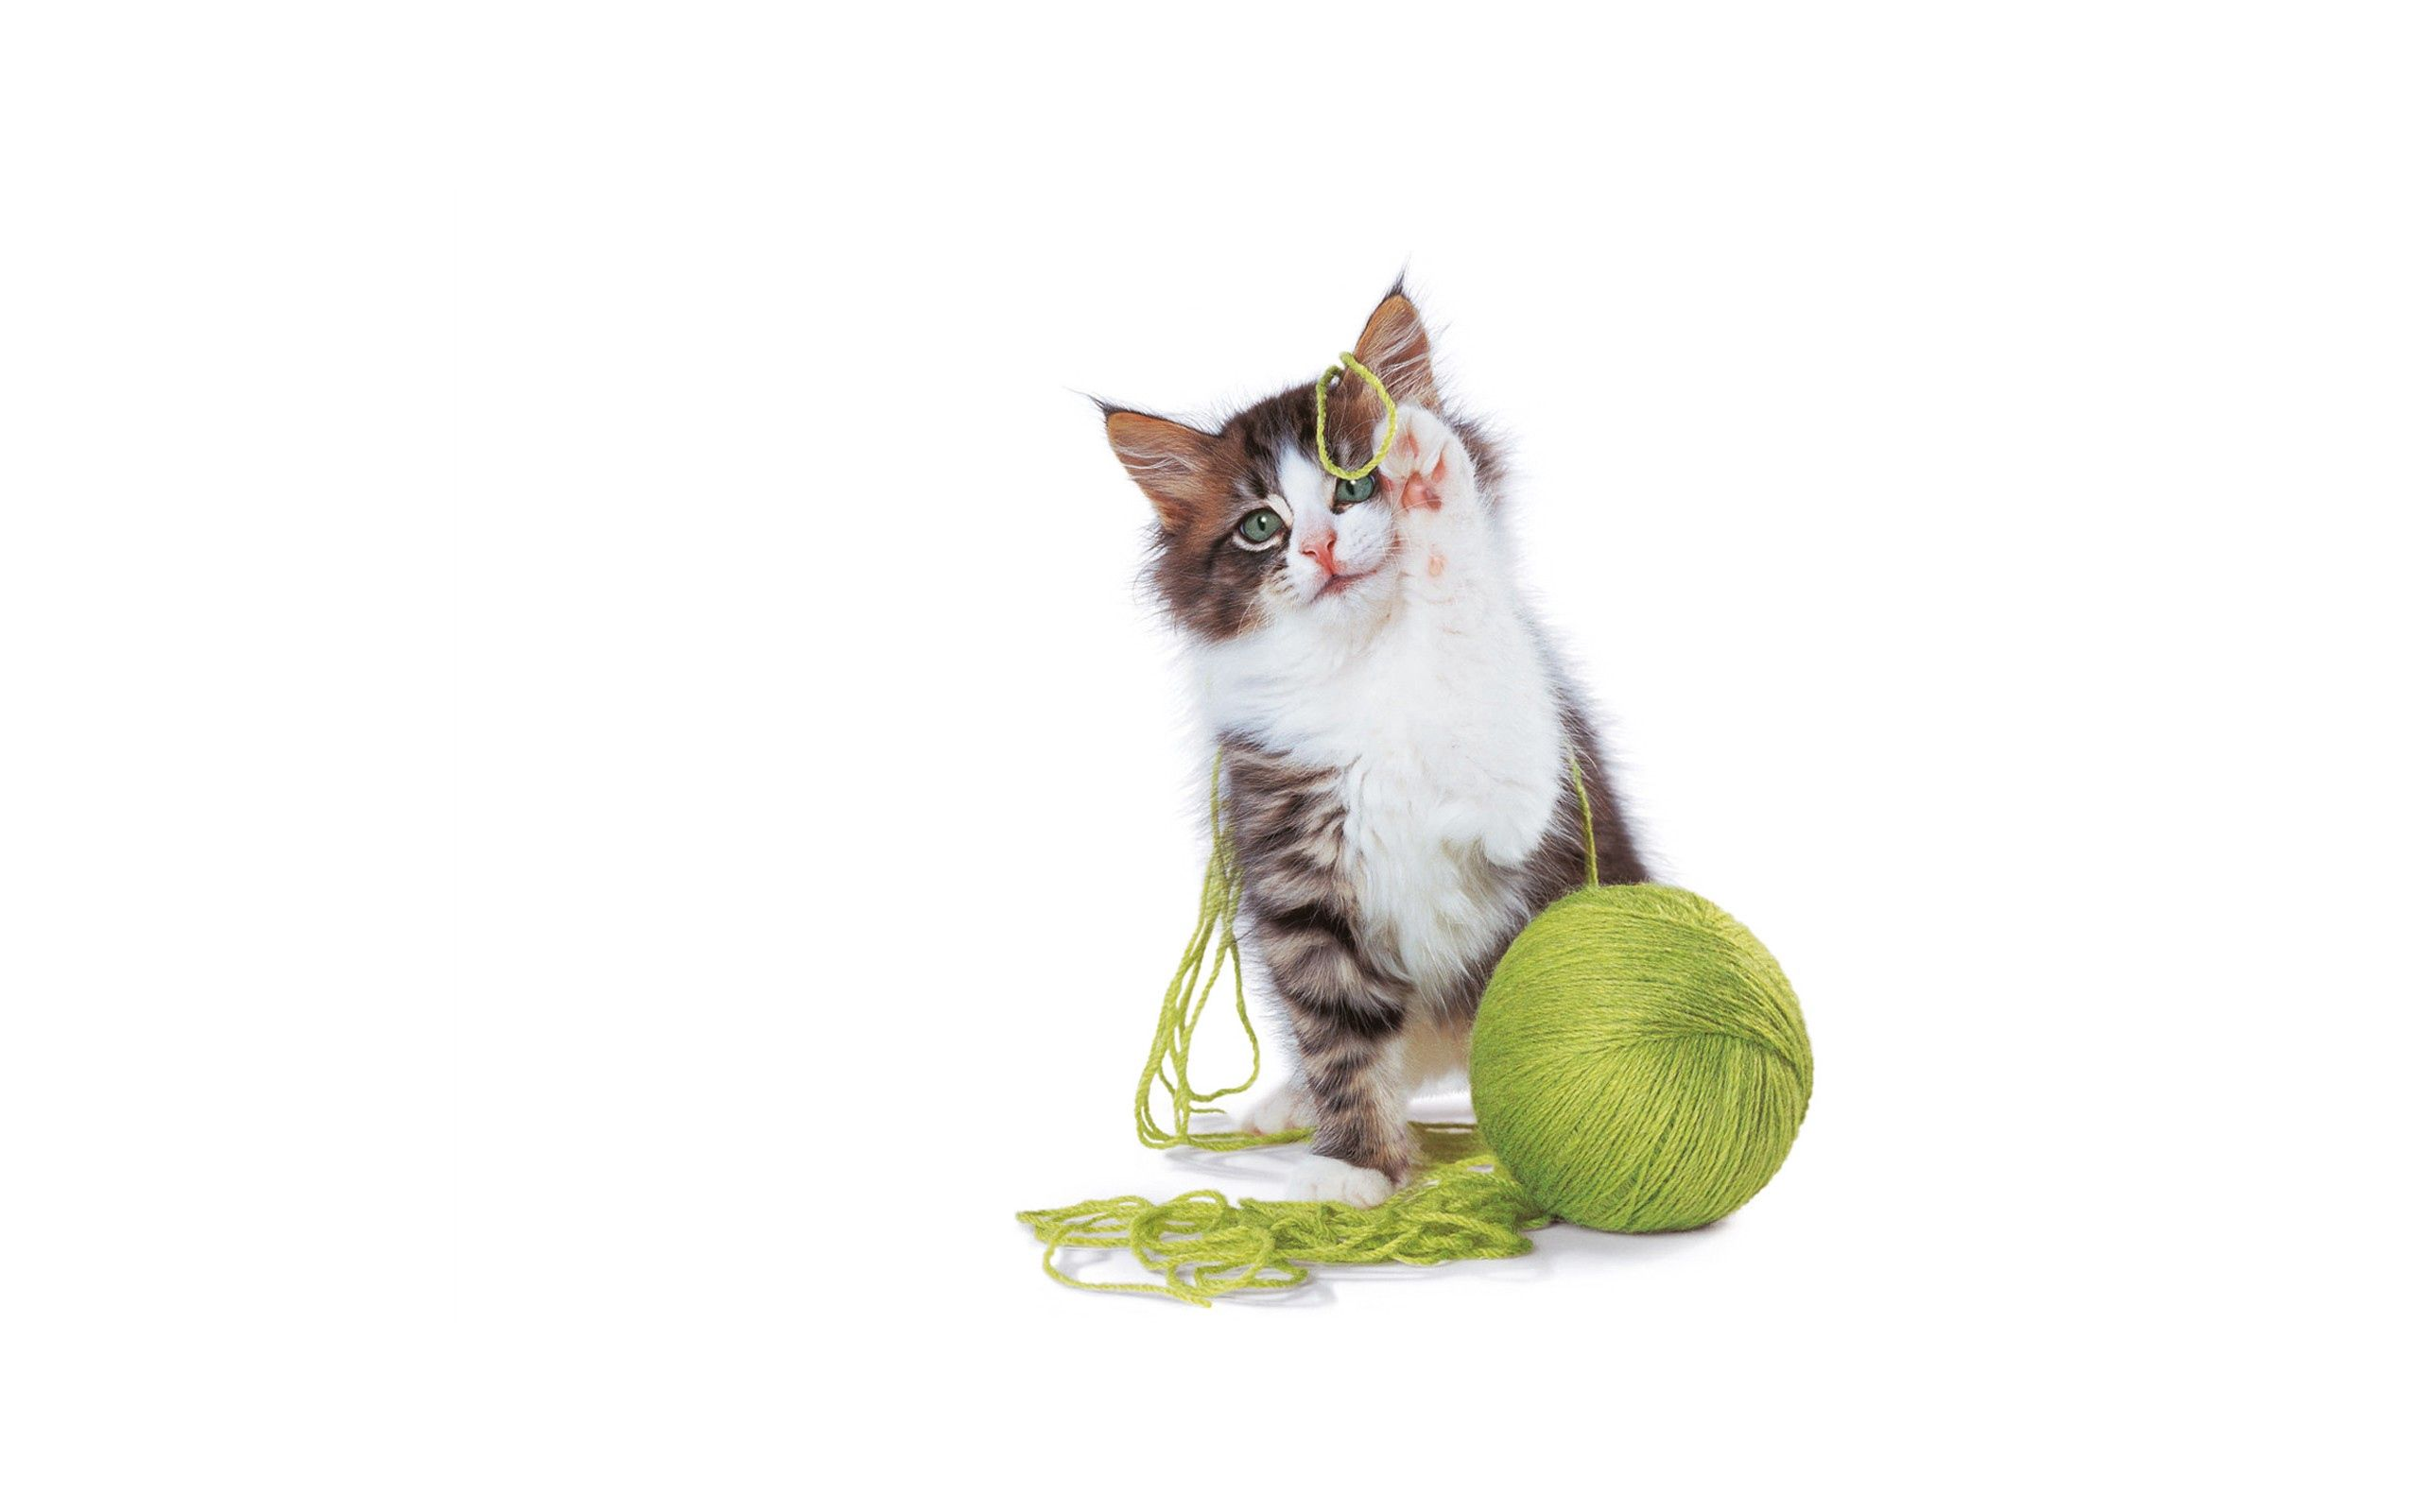 53892 download wallpaper Animals, Kitty, Kitten, Clew, Playful, Paws, Nice, Sweetheart screensavers and pictures for free